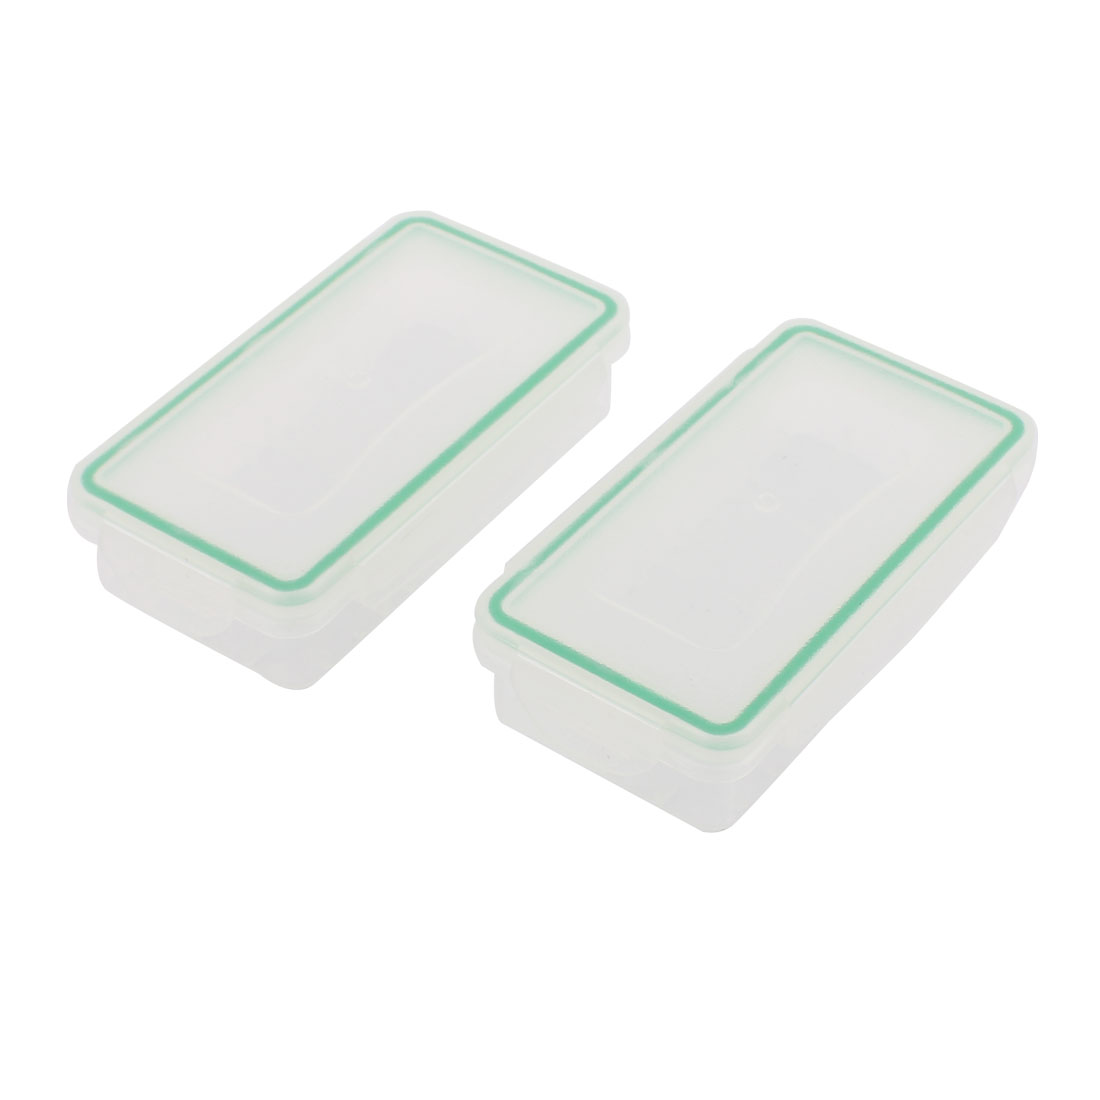 Plastic Rectangle Waterproof Battery Protective Case Storage Box Clear Green 2Pcs